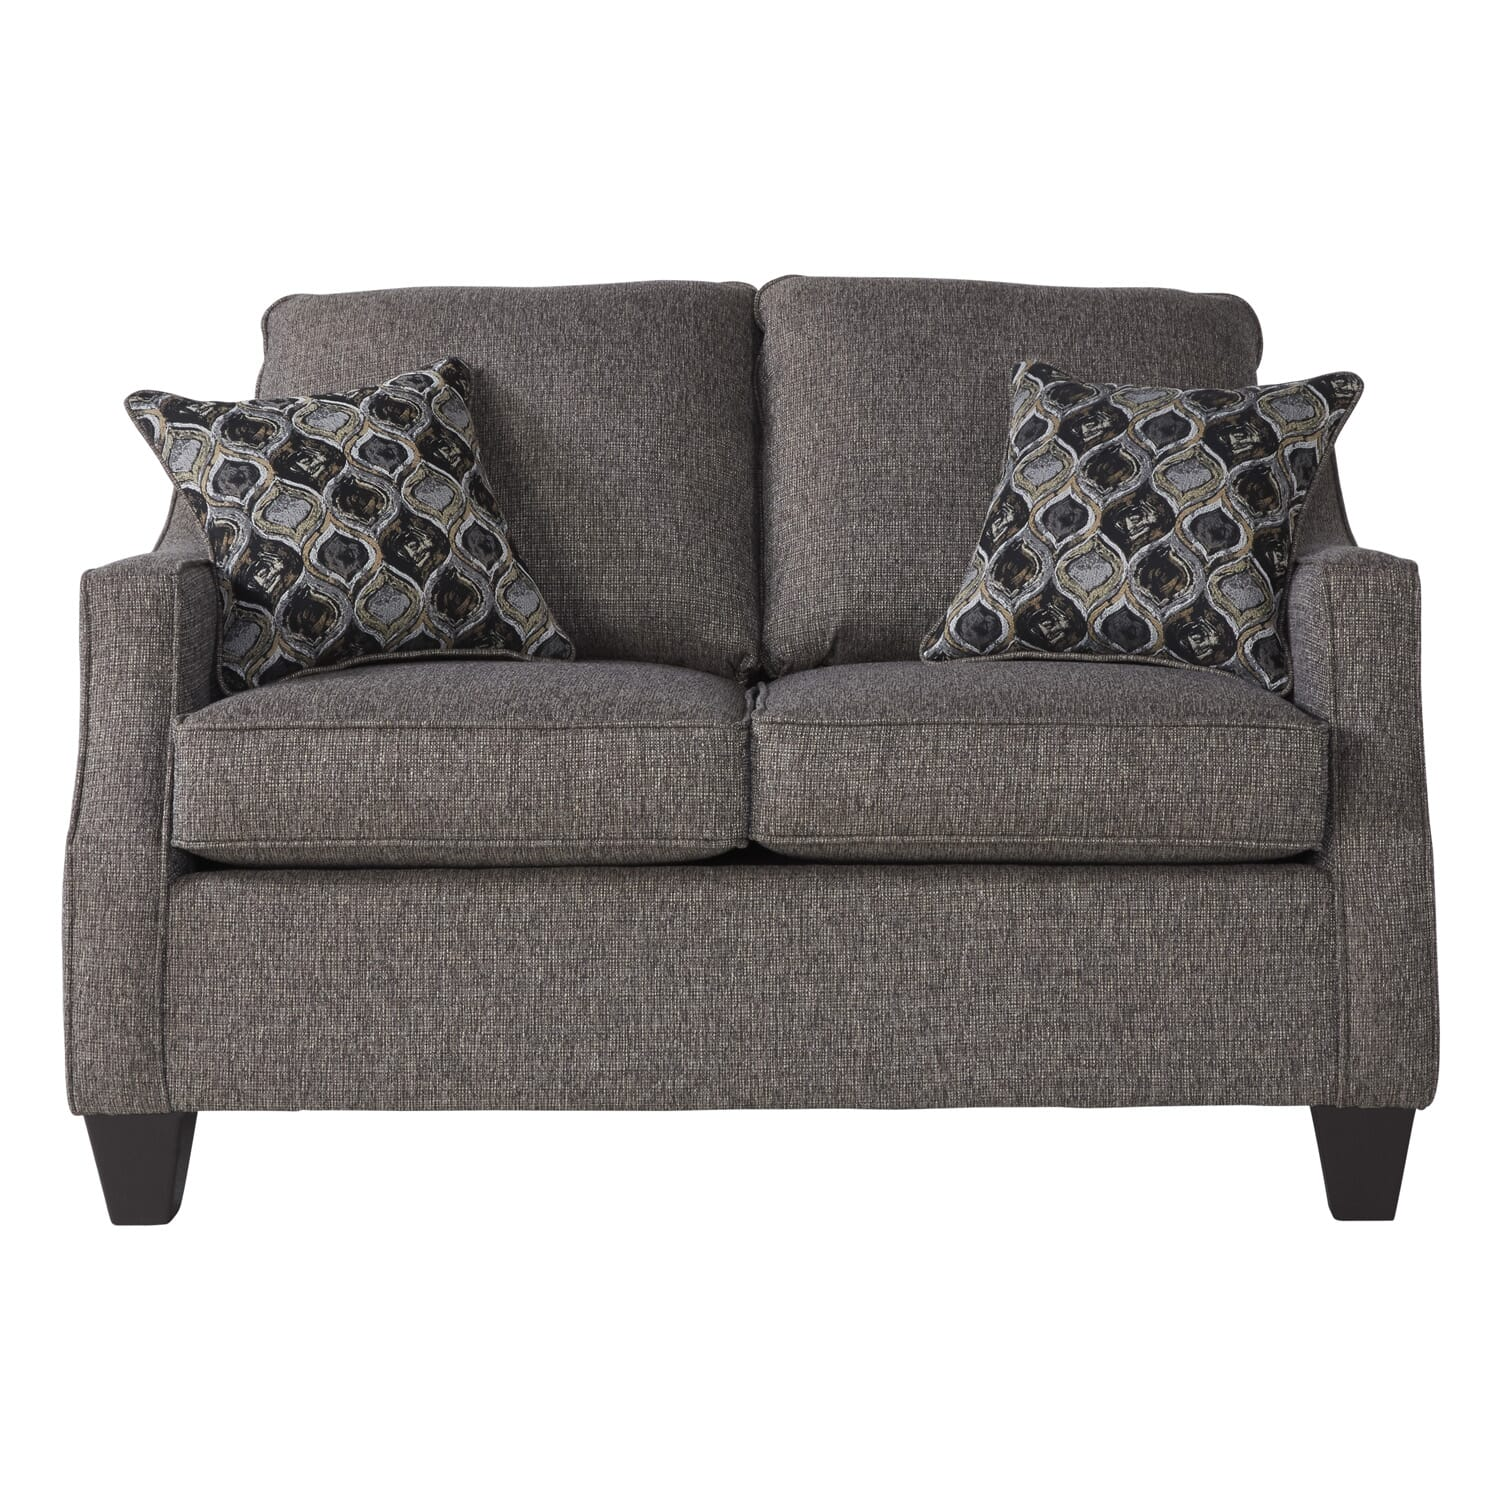 Danielle Loveseat Loveseats Wg Amp R Furniture